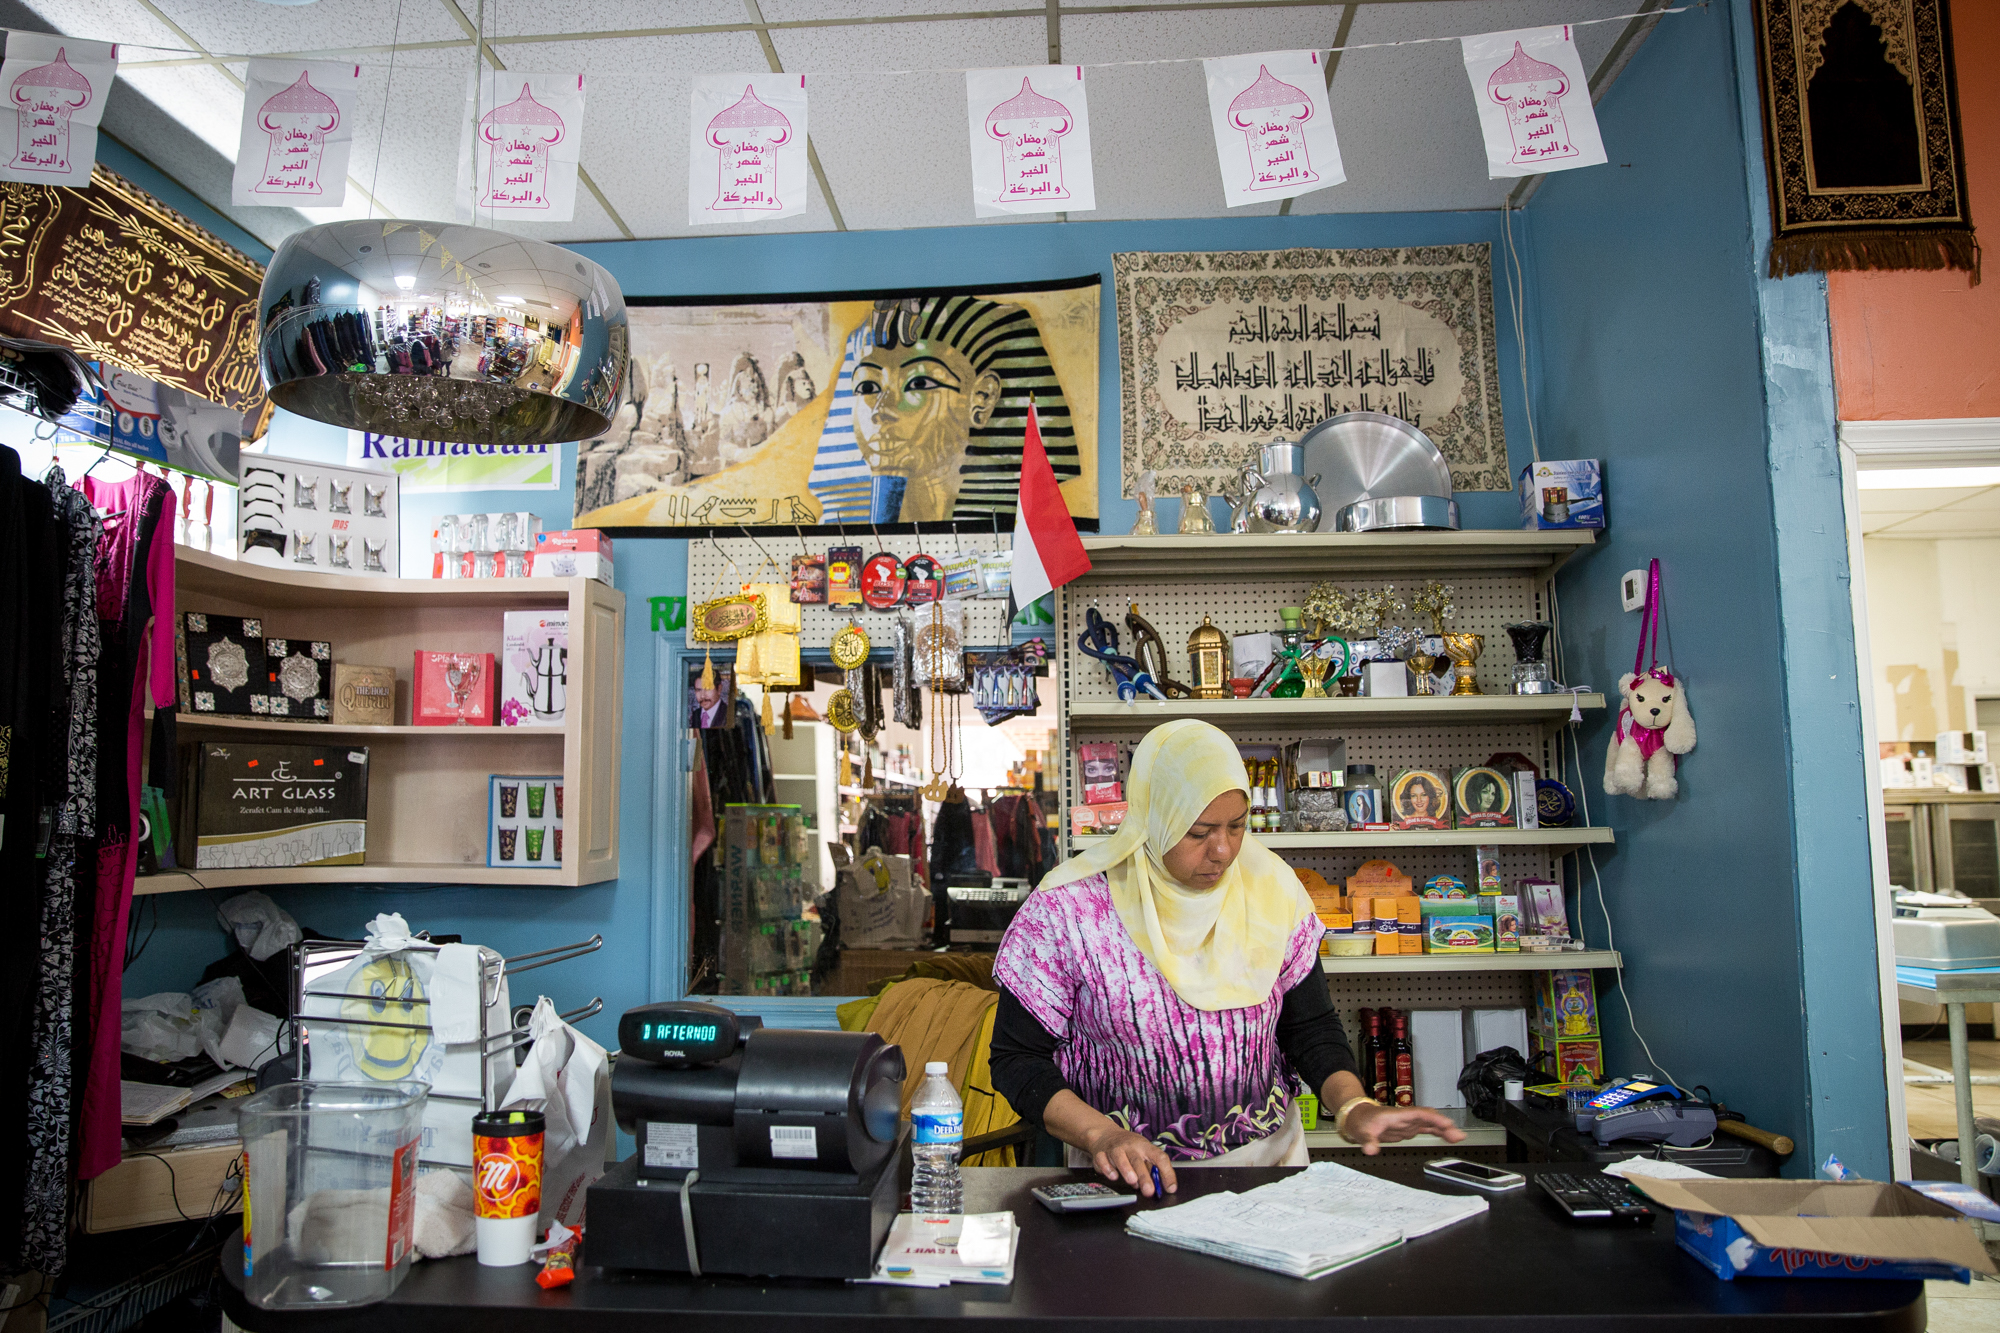 Ola processes payments at her store in Camp Hill, one of the few in the area that specifically serves people from the Mediterranean and Middle East. Ola owns the store and works long hours to keep it running nearly every day of the week.